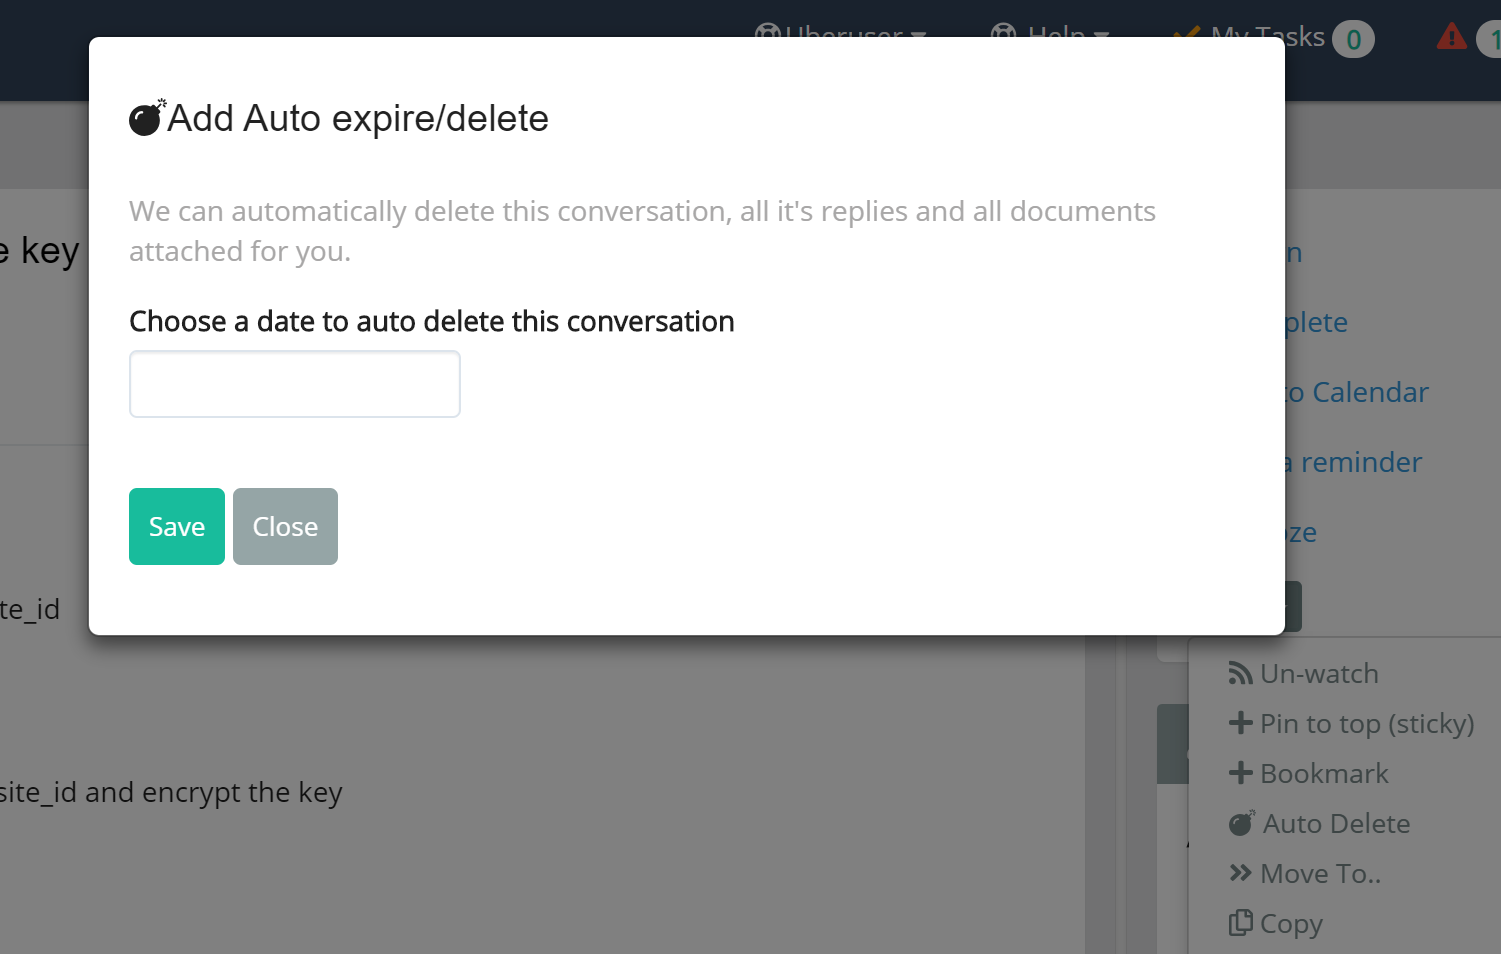 We can automatically delete a conversation and documents after a set date